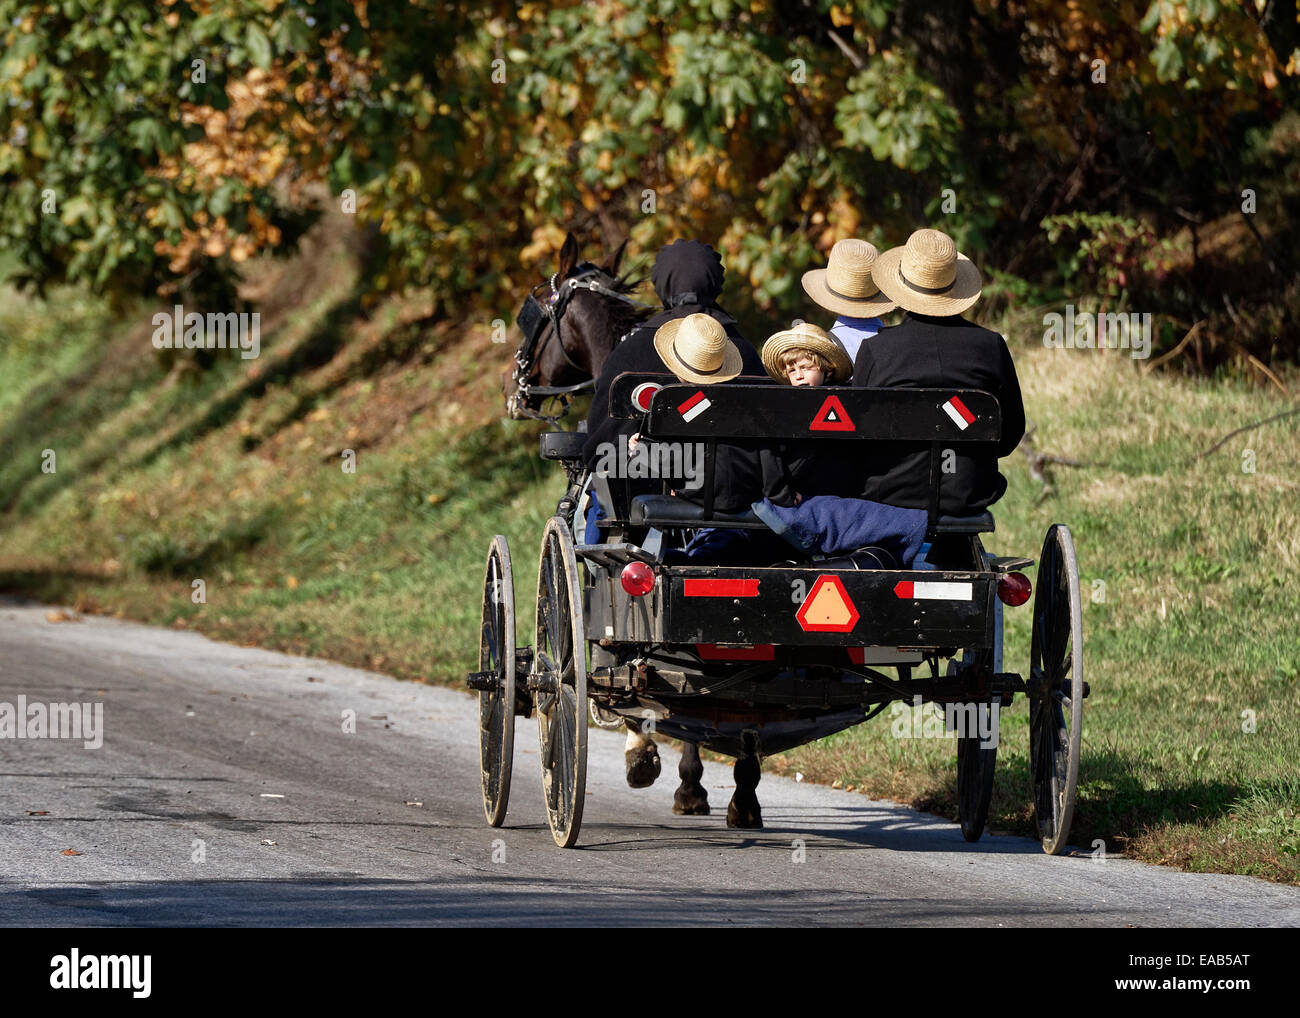 Amish family in horse drawn buggy, Ronks, Lancaster County, Pennsylvania, USA - Stock Image